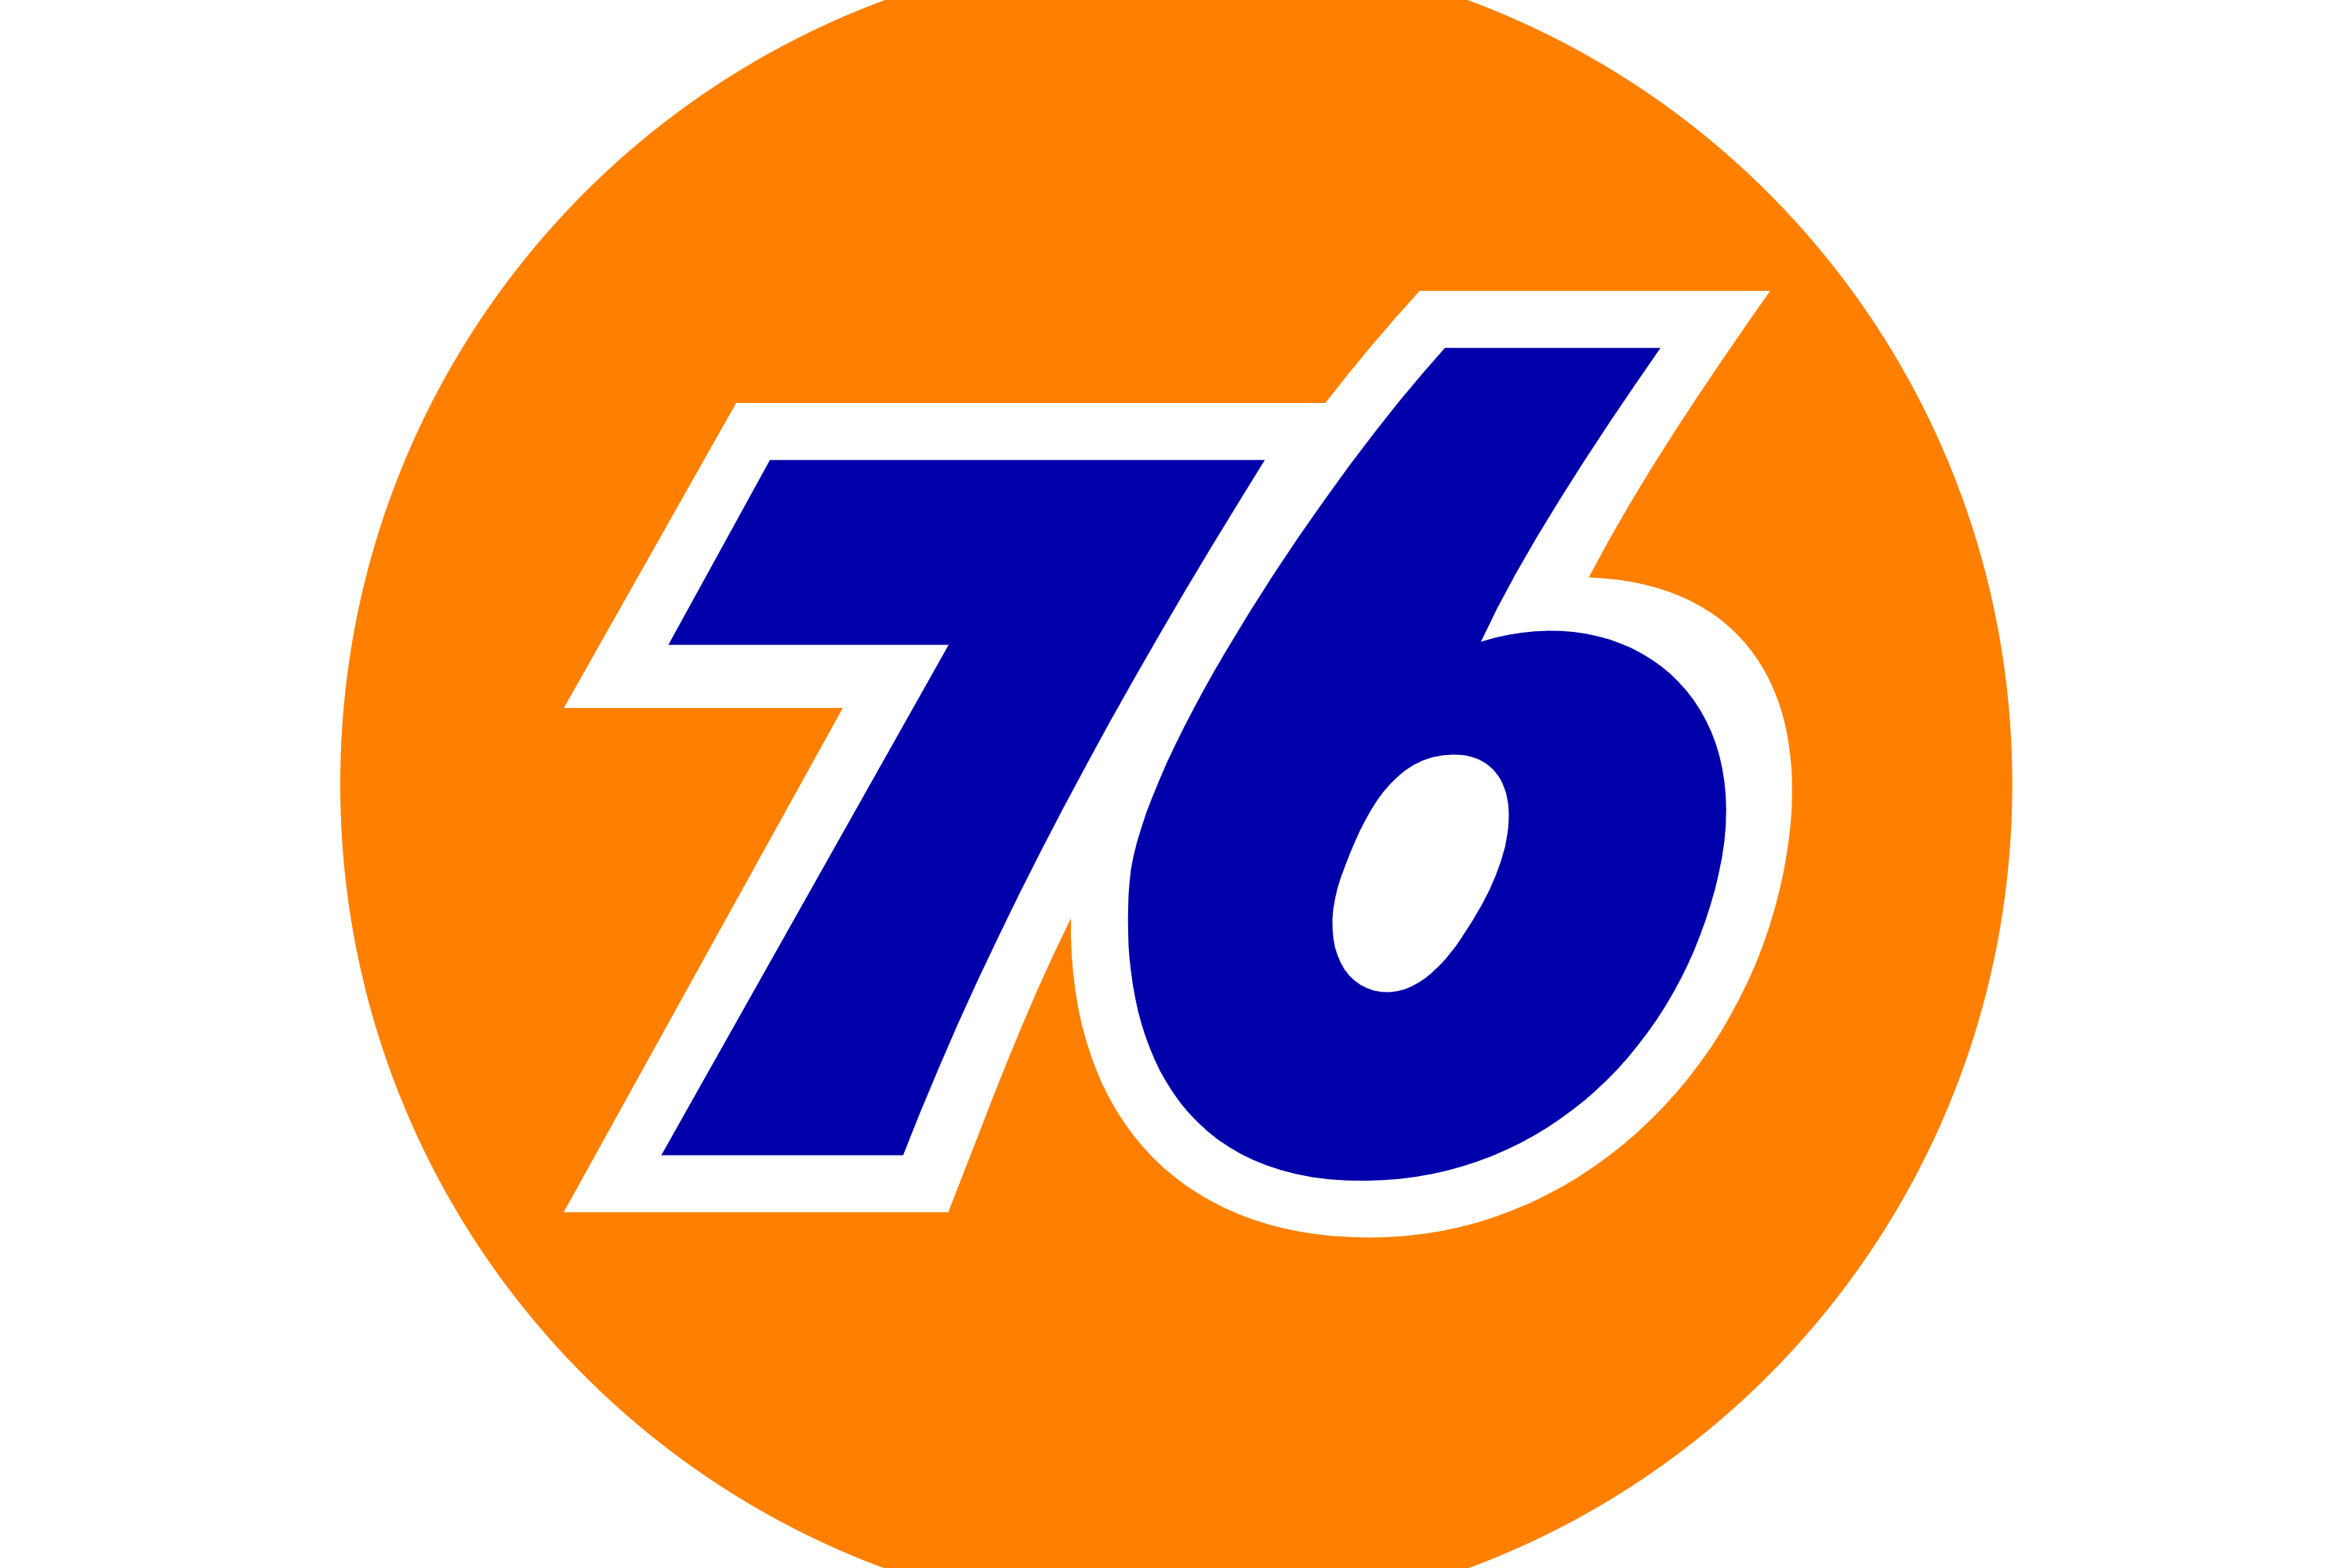 """Orange Cirle with """"76"""" in the center in blue text with white outline. 76 Gas Station logo"""